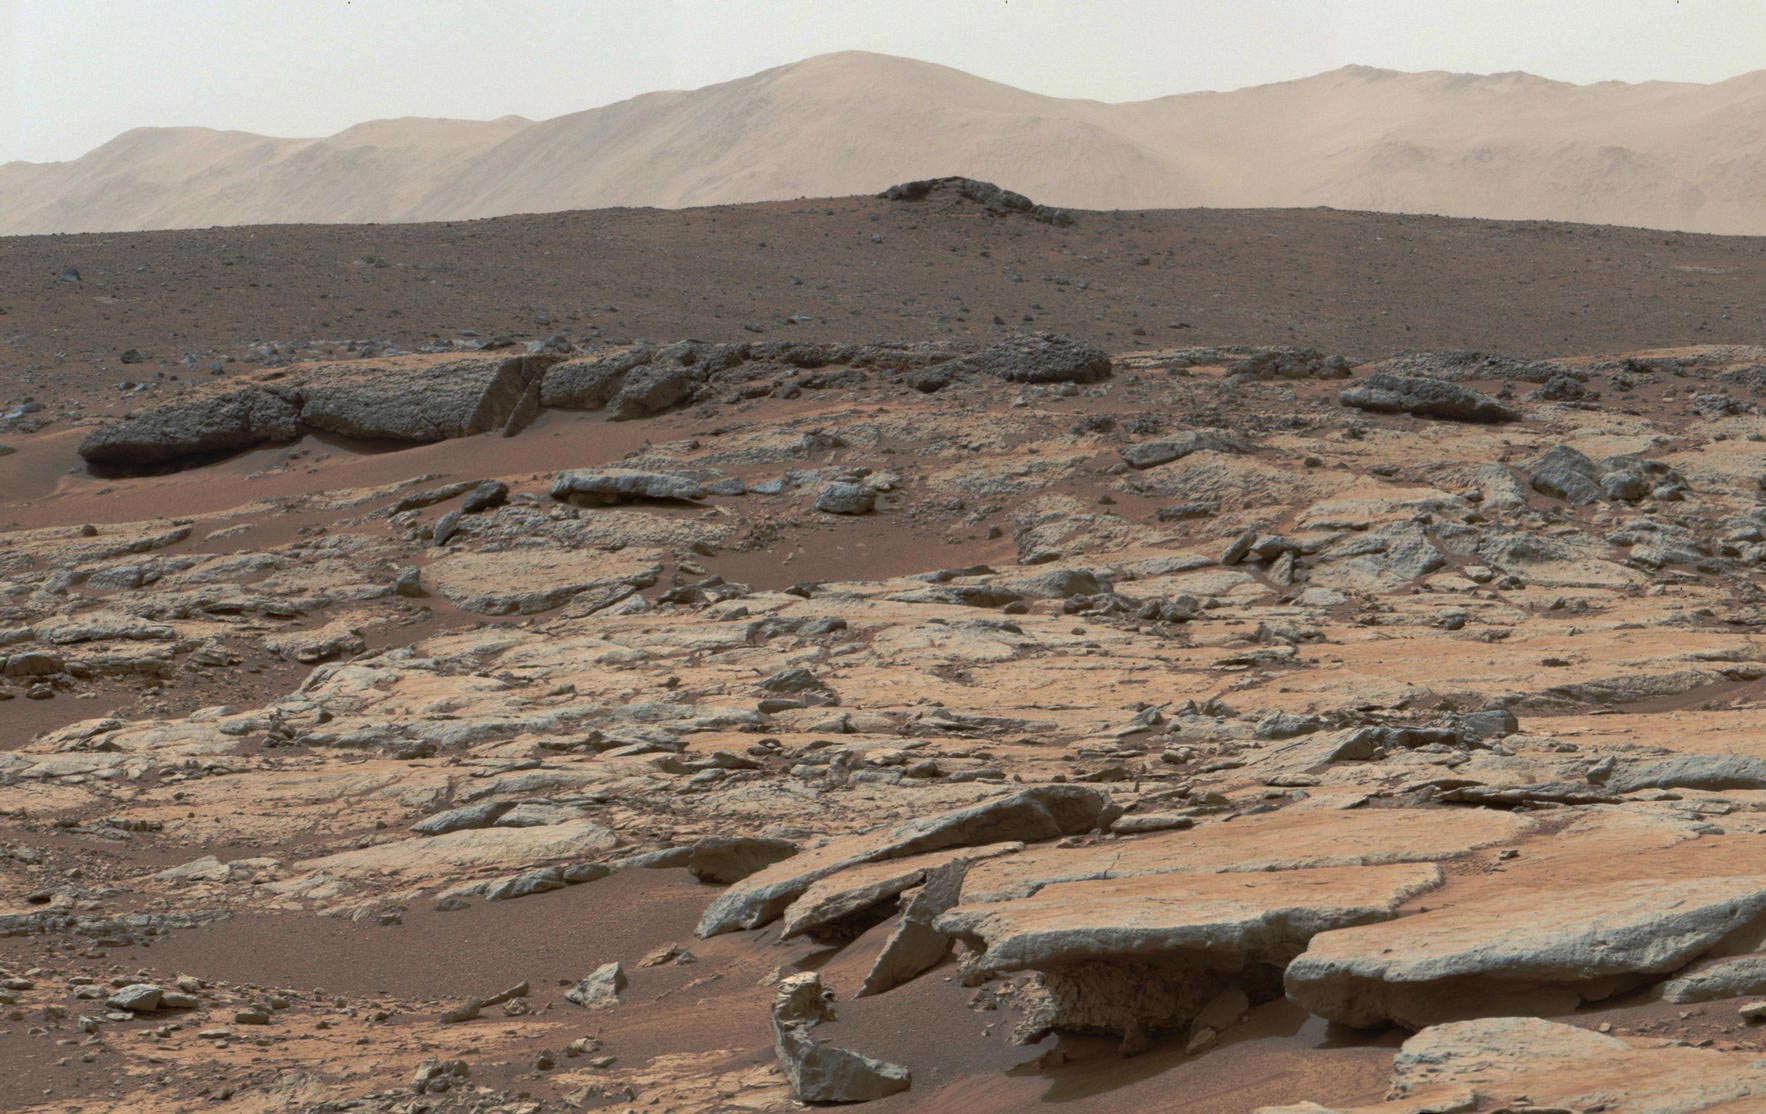 NASA Curiosity Mars Sedimentary Deposits Glenelg Gale Crater